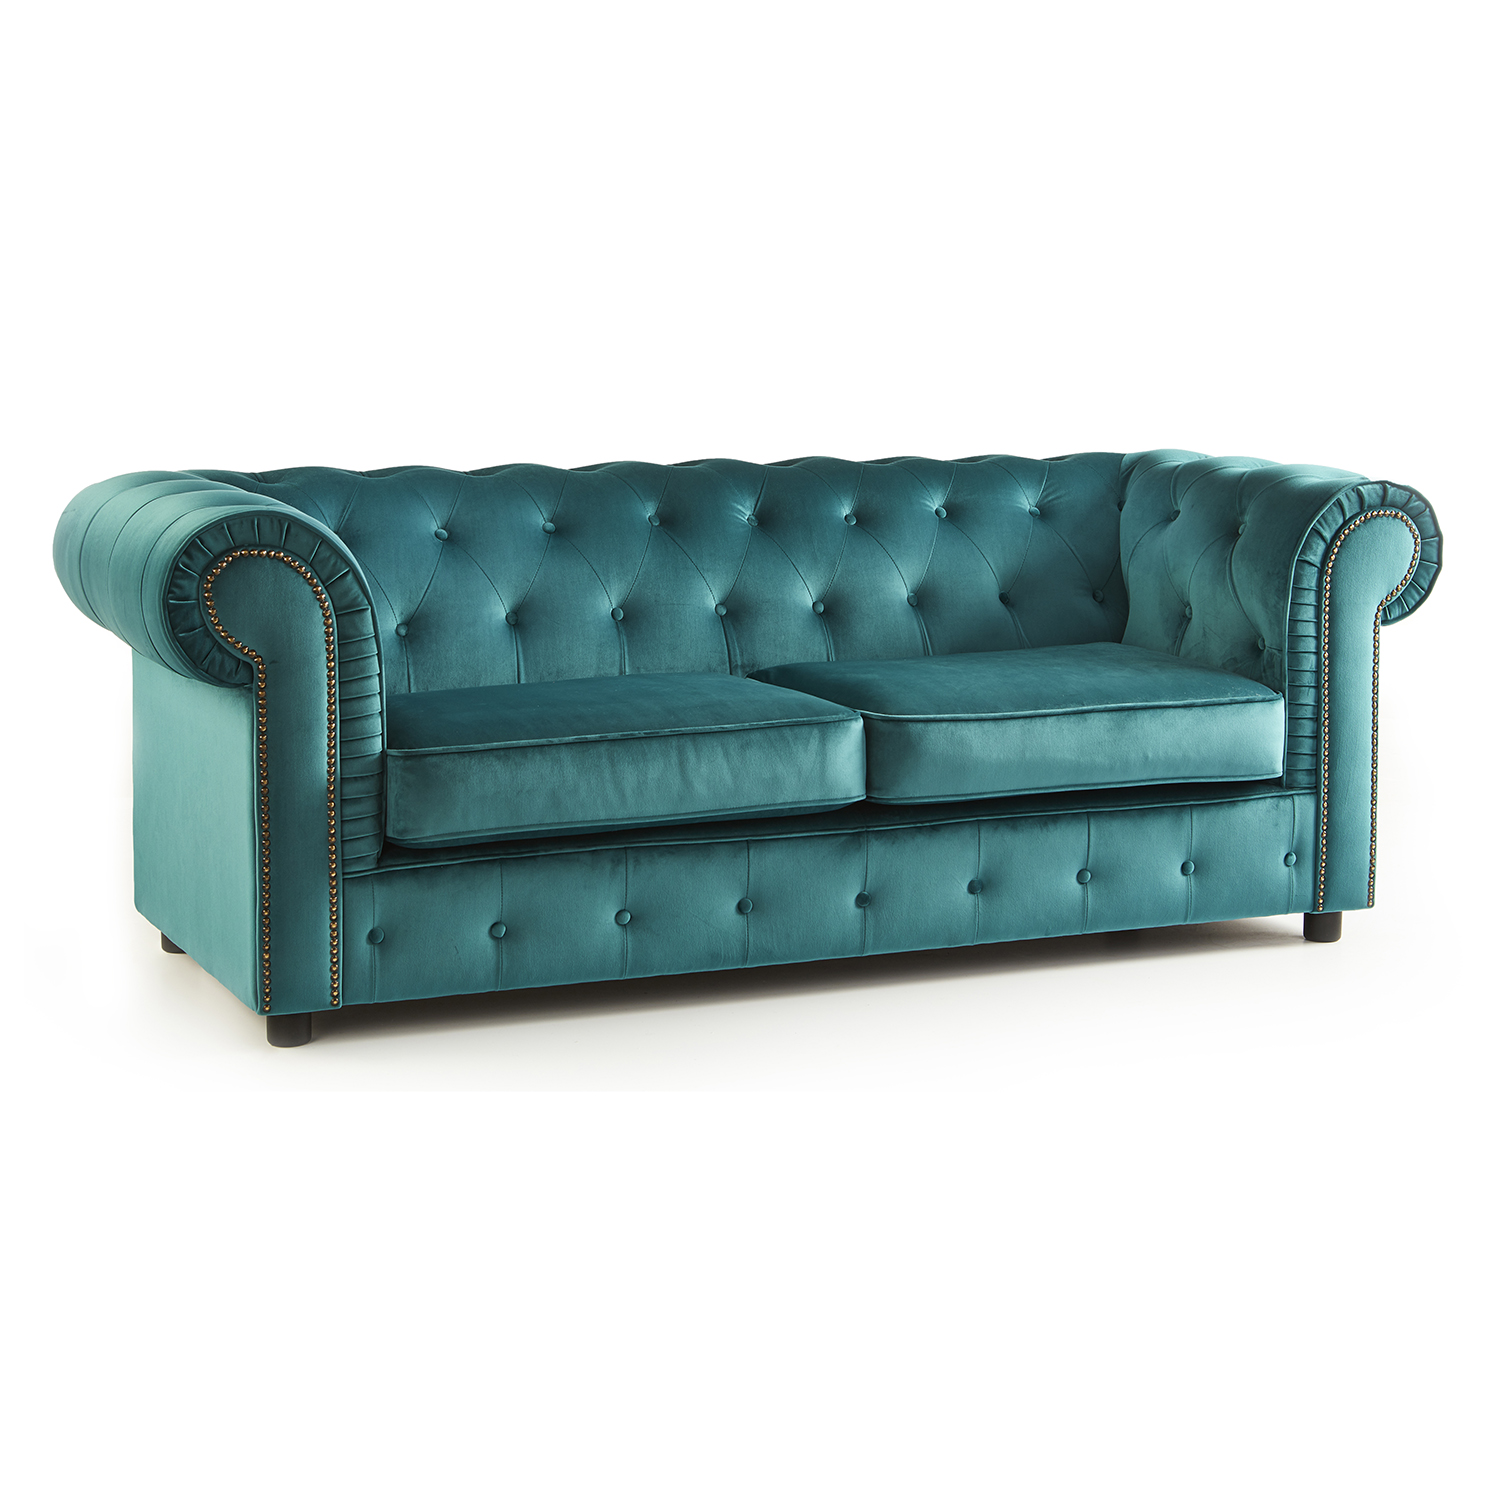 The Ashcroft Soft Velvet Chesterfield 3 Seater Sofa - Teal